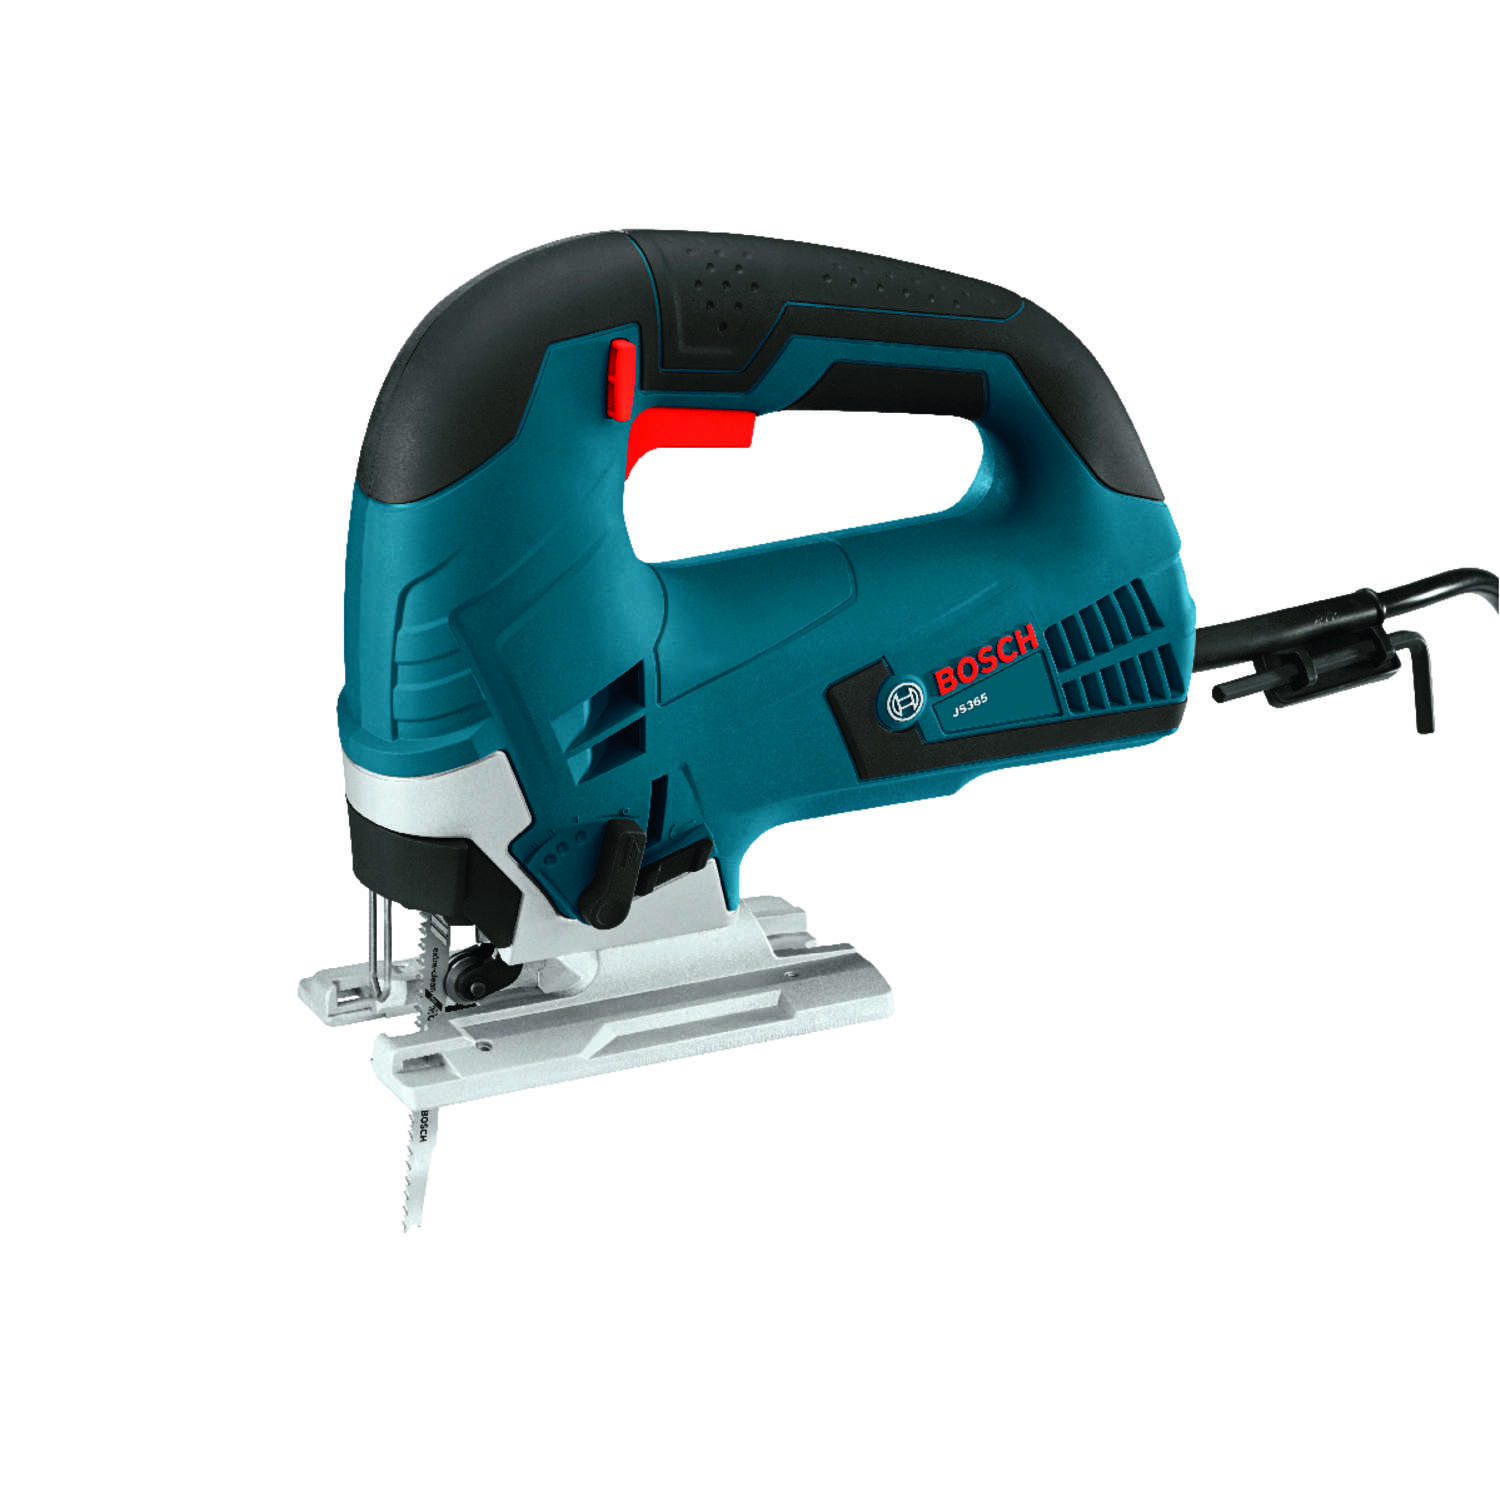 Bosch 120 volt 6.5 amps Corded Top Handle Jig Saw Kit (Battery)